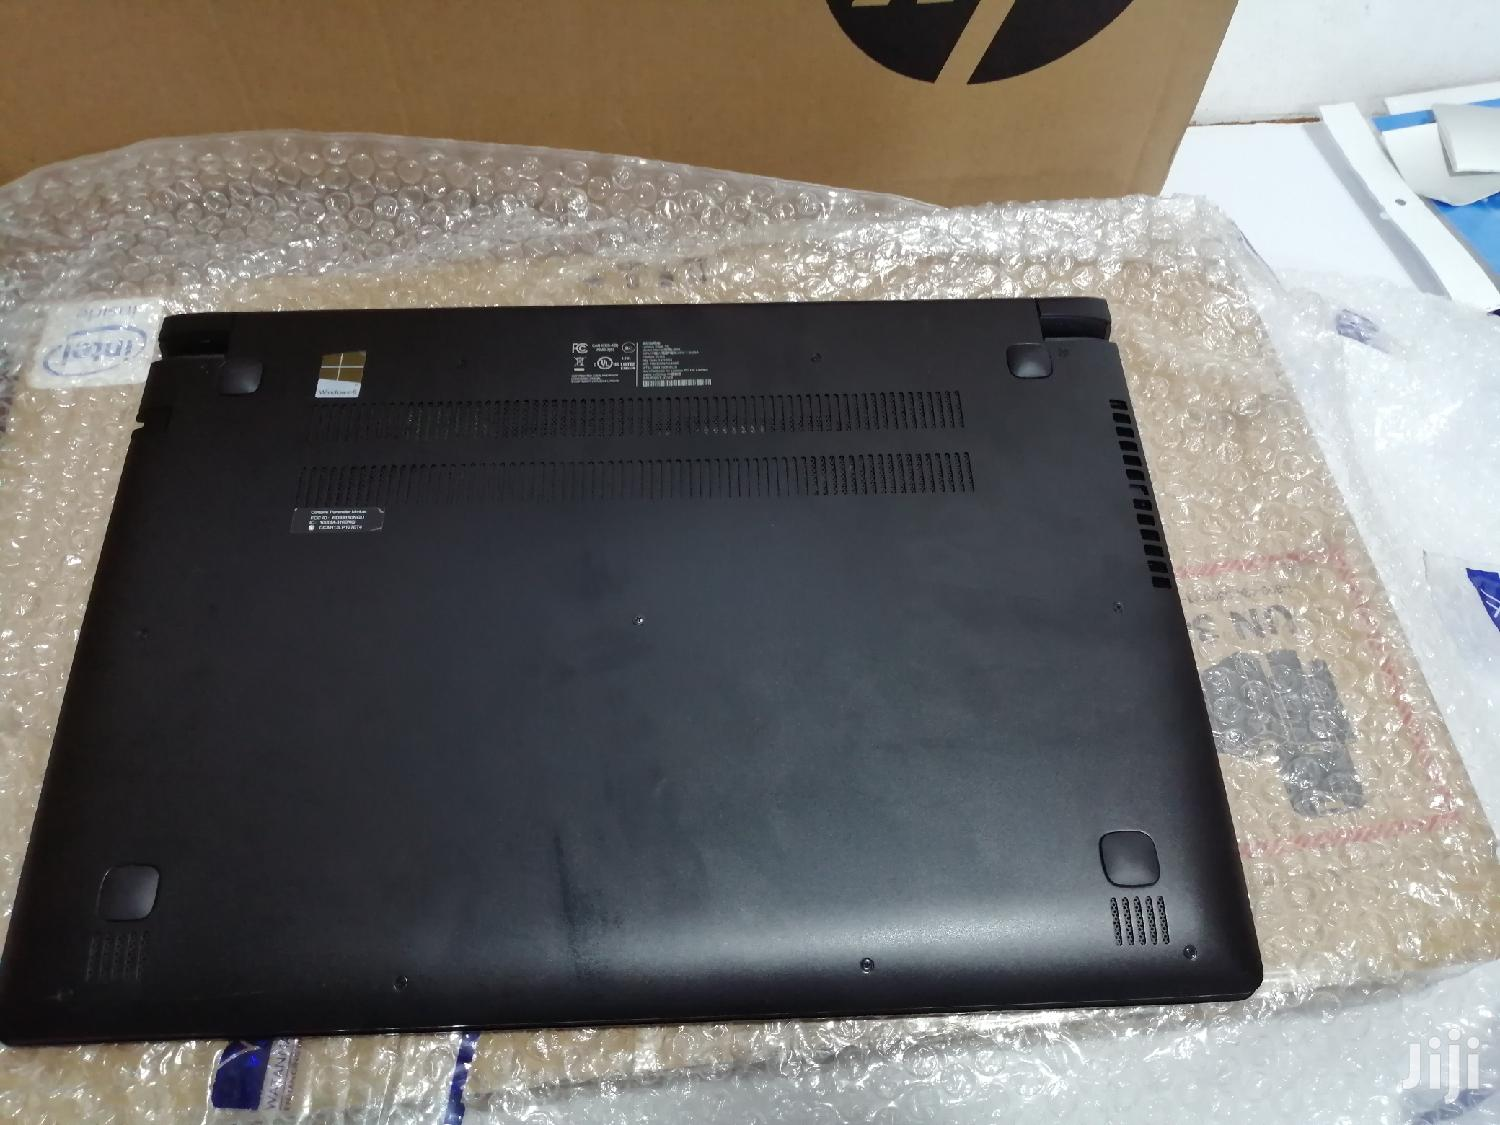 New Laptop Lenovo ThinkPad Edge 15 8GB Intel Core I5 SSD 128GB | Laptops & Computers for sale in New Abossey Okai, Greater Accra, Ghana